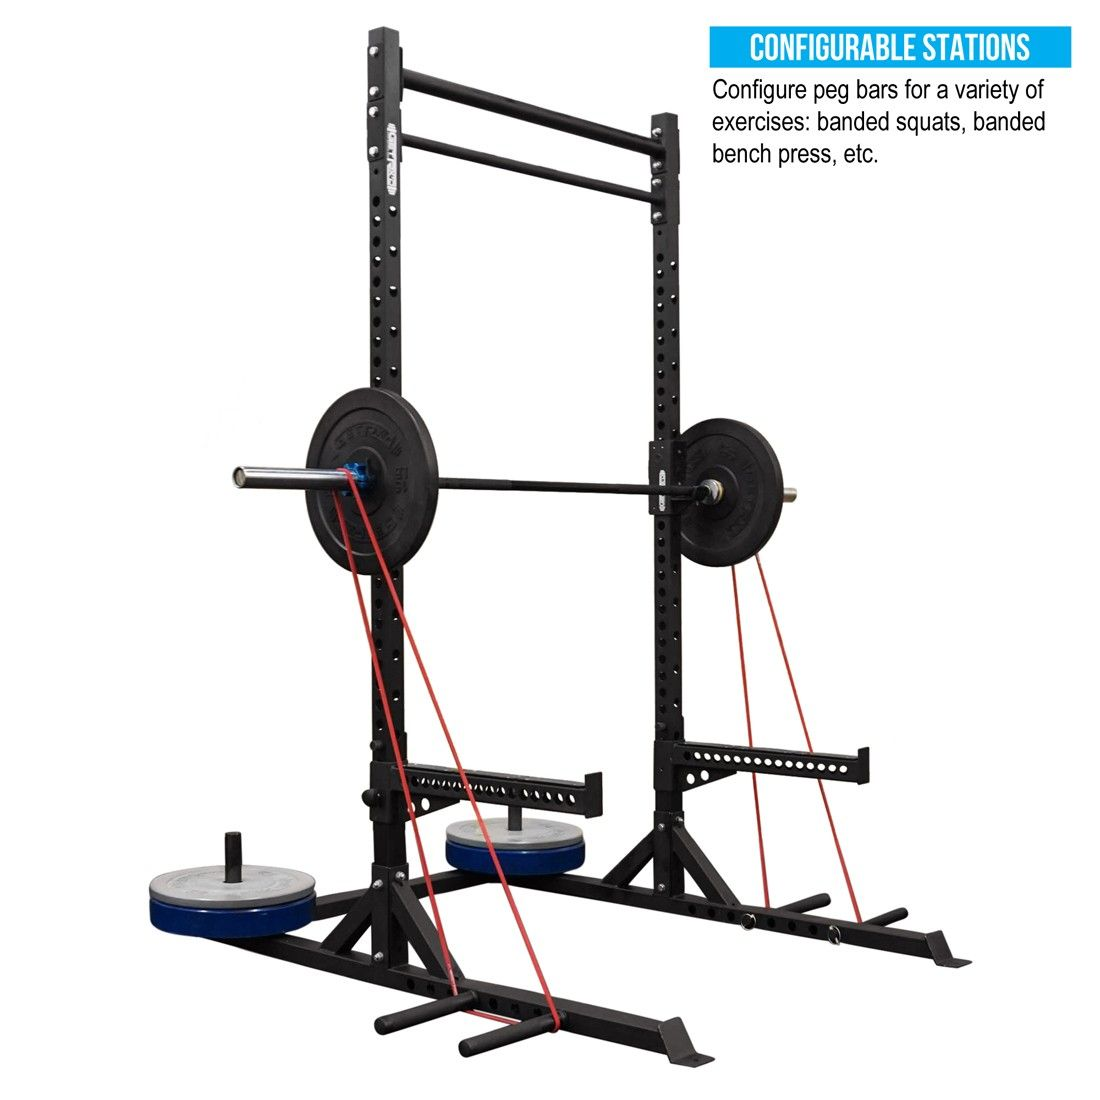 Guillotine Squat Rack And Pull Up Bar Combo Pull Up Bar Up Bar Squat Rack